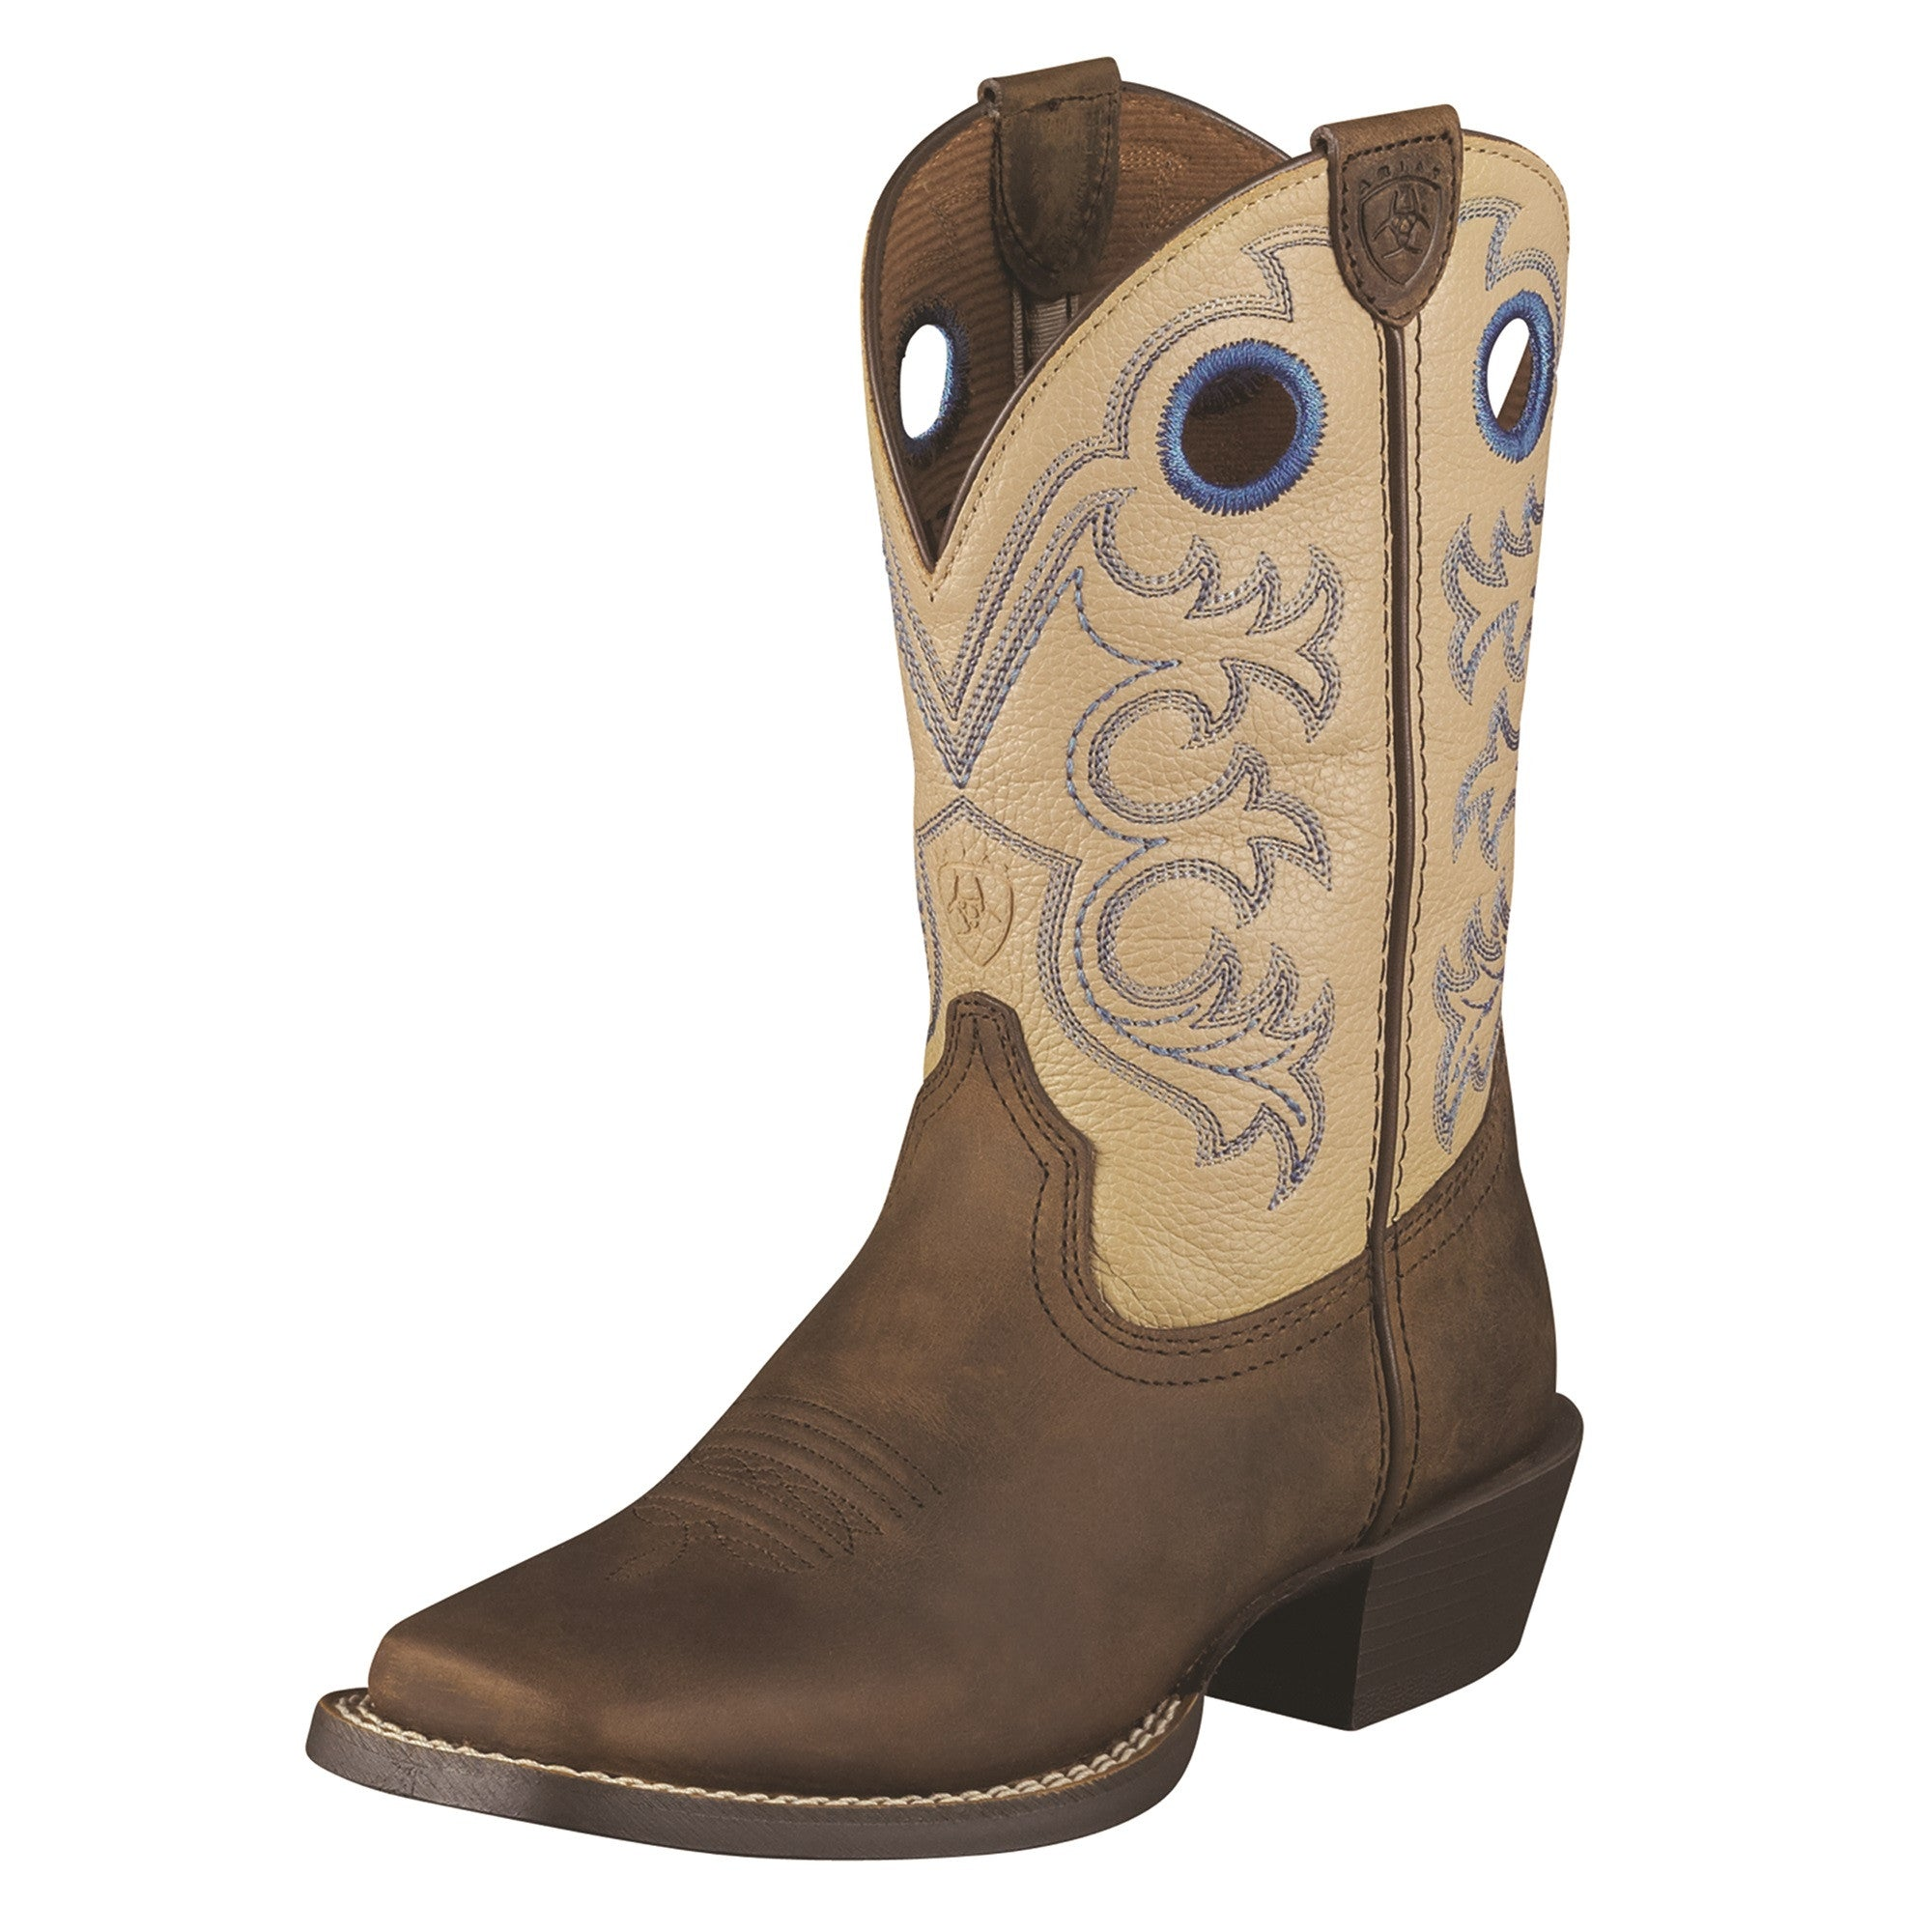 Children's/Youth's Ariat Crossfire Boot #10005993